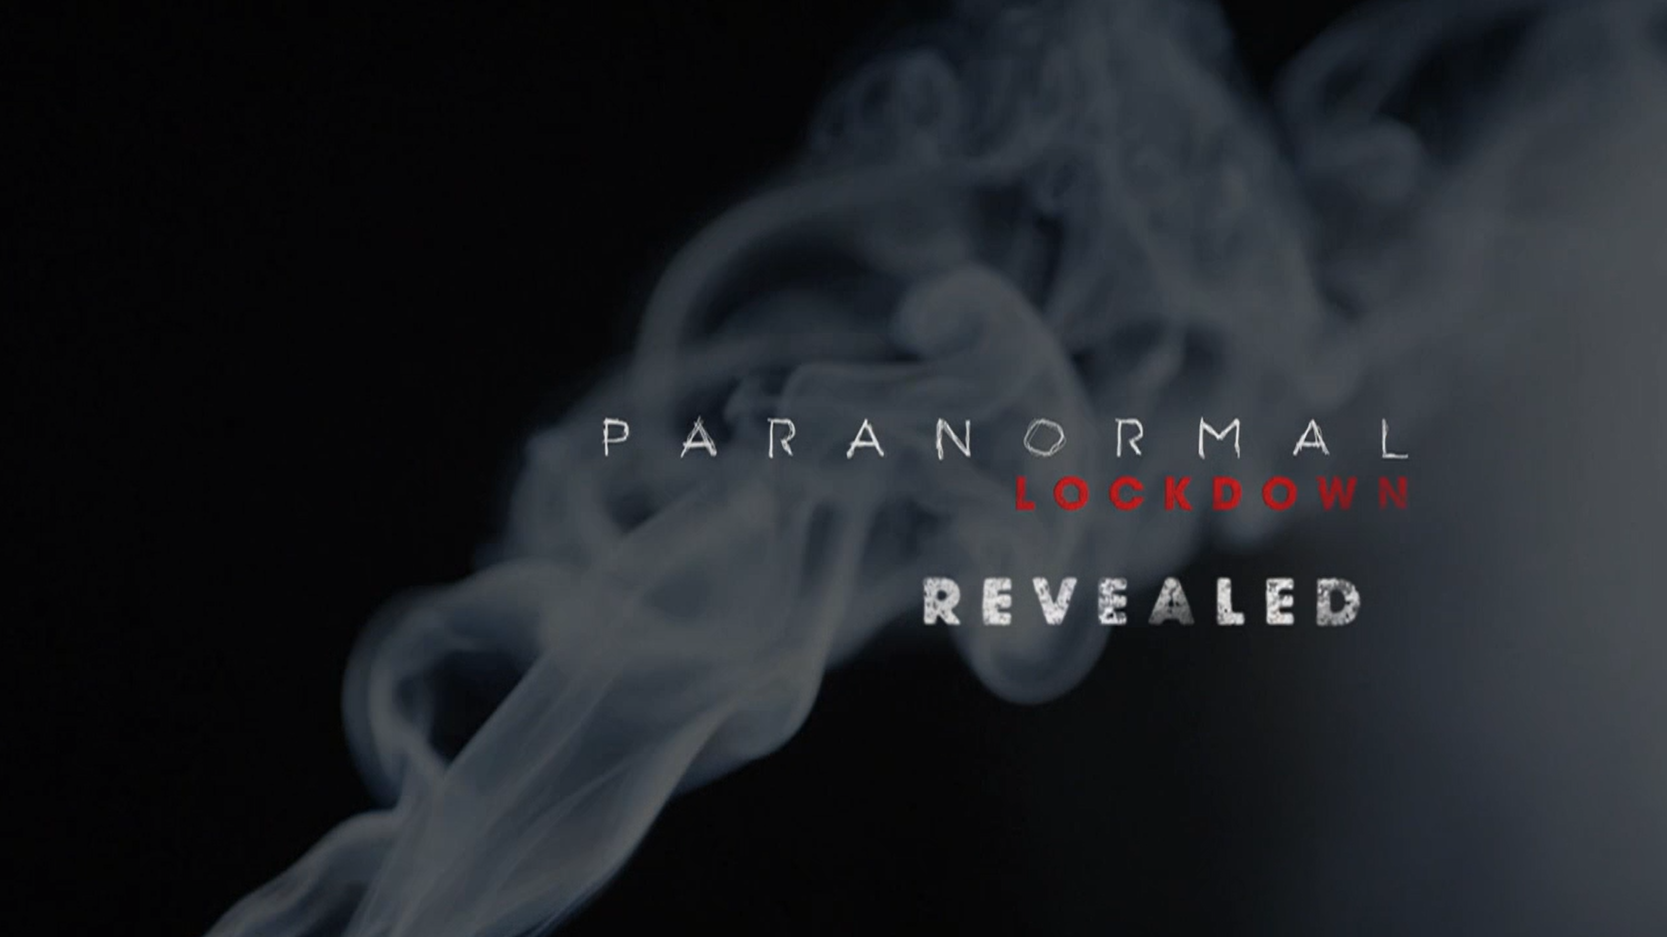 Paranormal Lockdown Revealed - Title Graphic Still